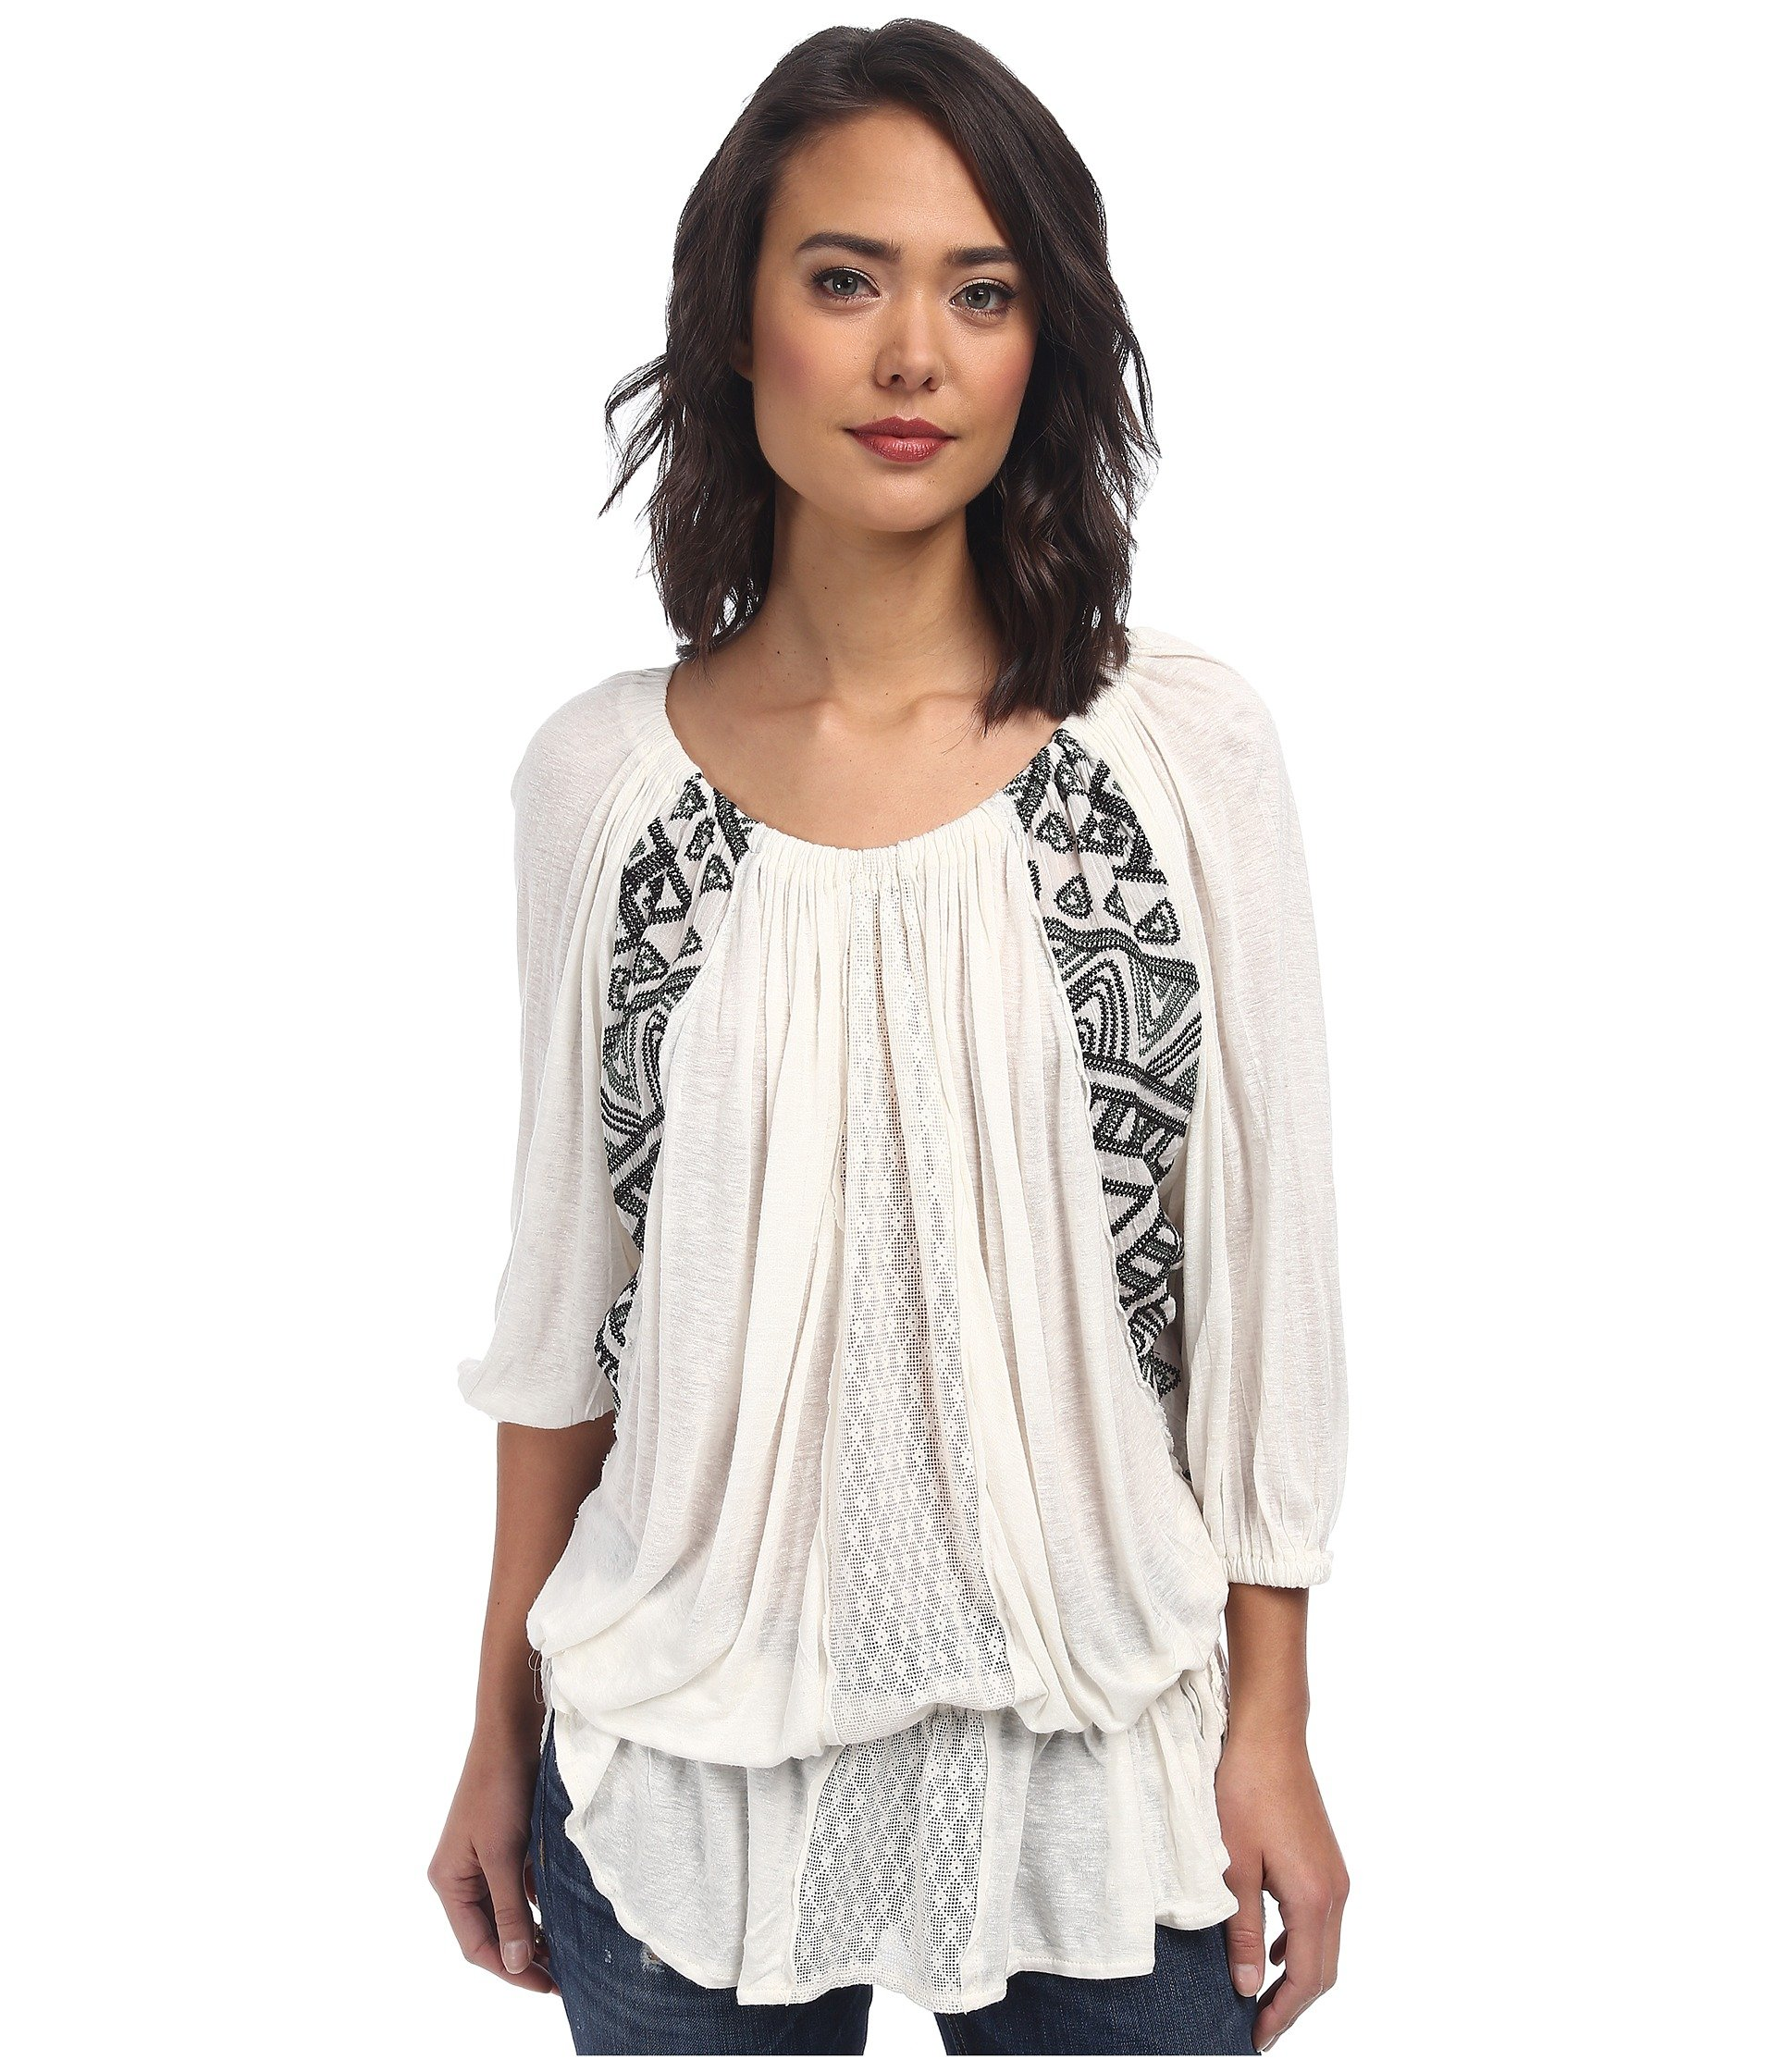 d66fddbfc7a Lyst - Free People New World Jersy Butterfly Tunic in White